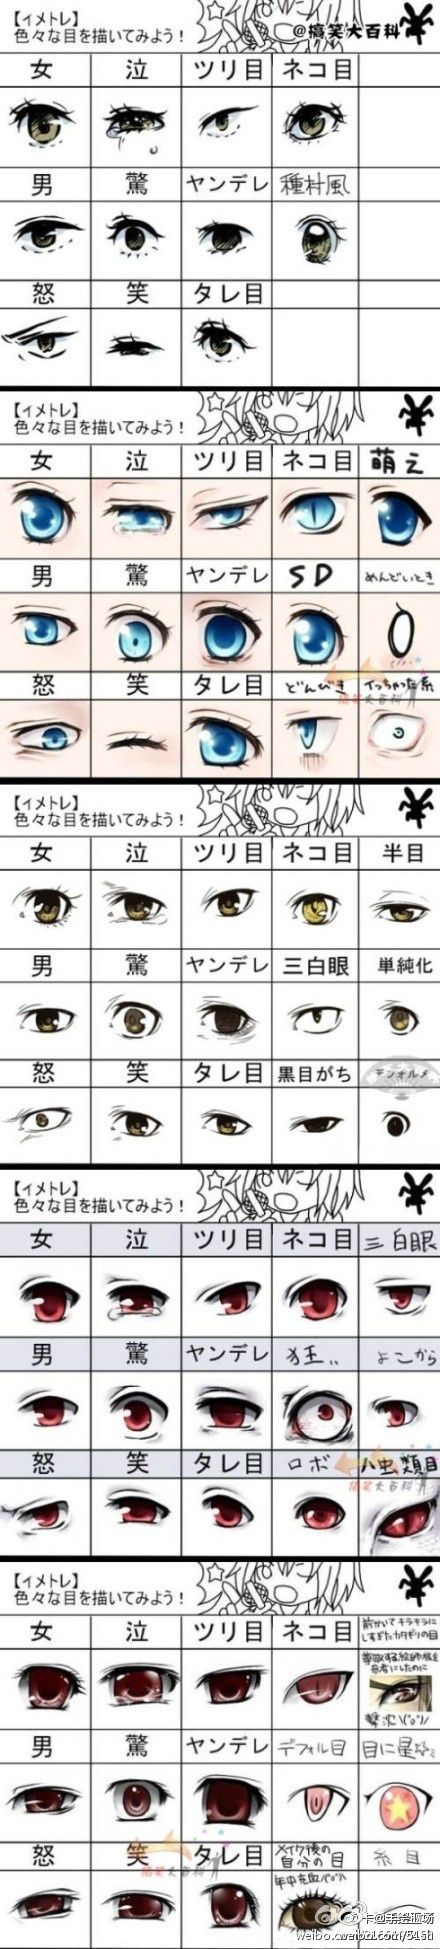 How To Draw Anime Eyes Interesting Considering Never Really Been Able To  Master Anime